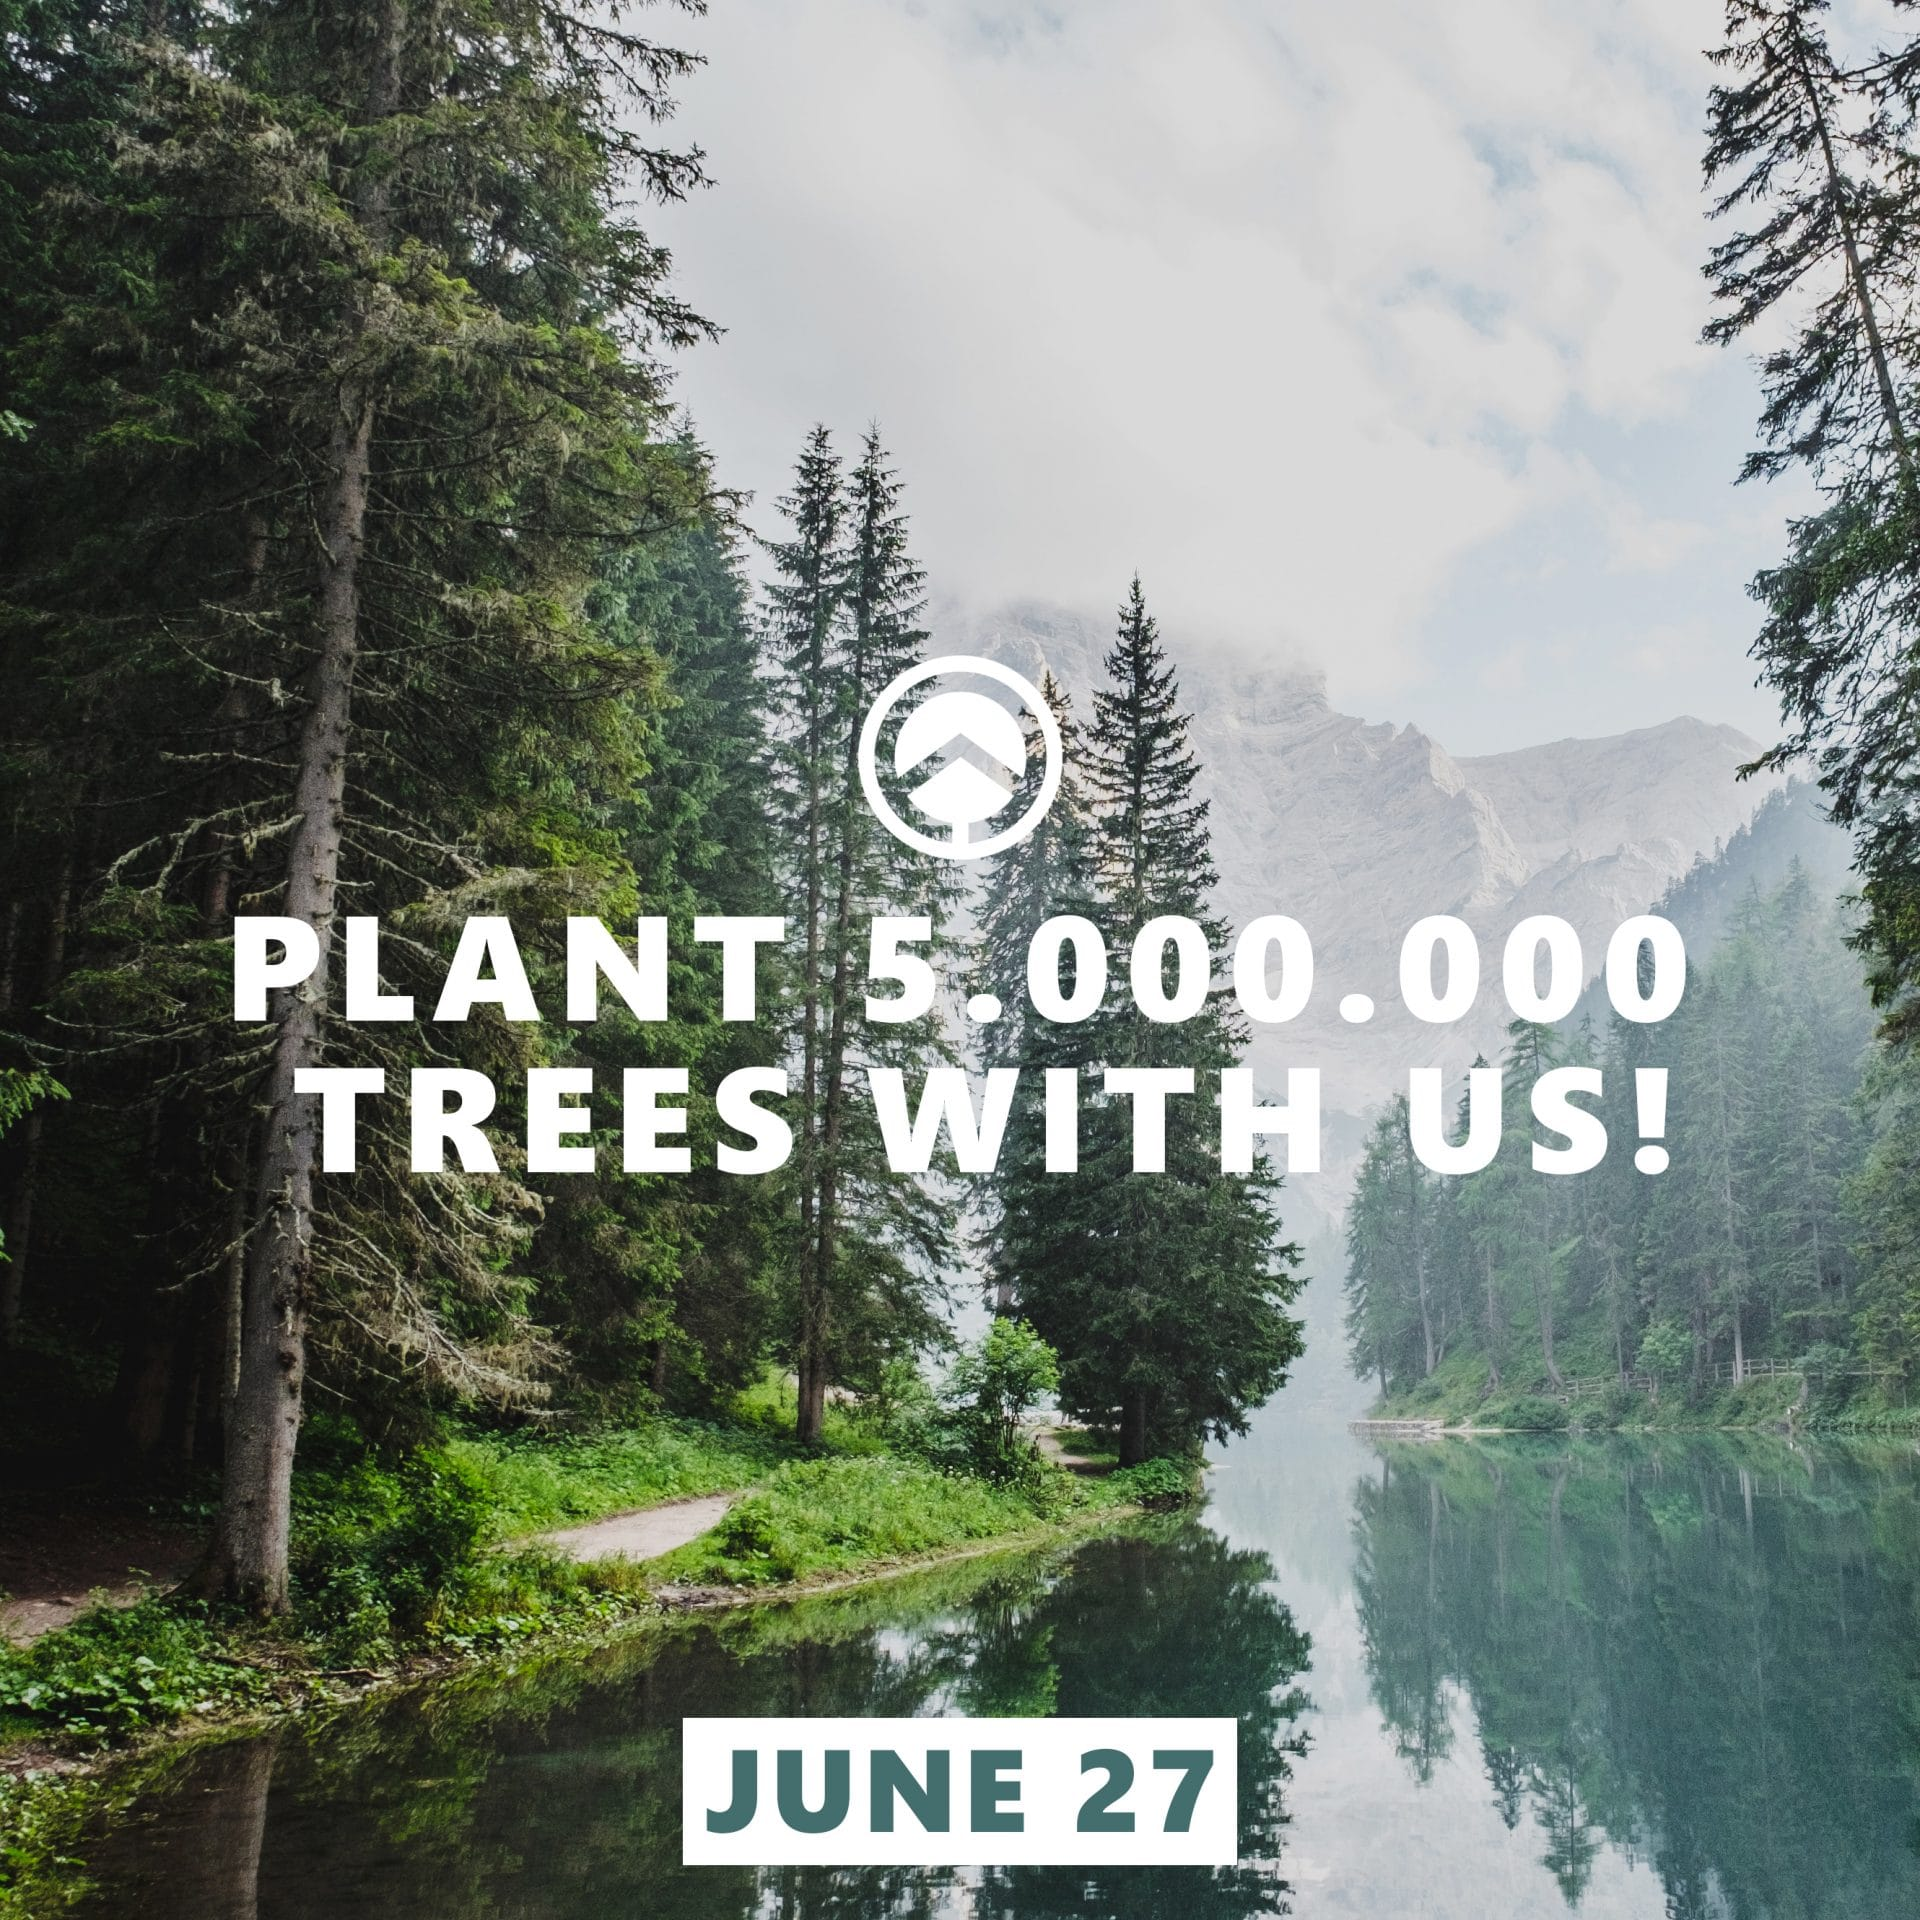 Plant 5000000 trees with us""""